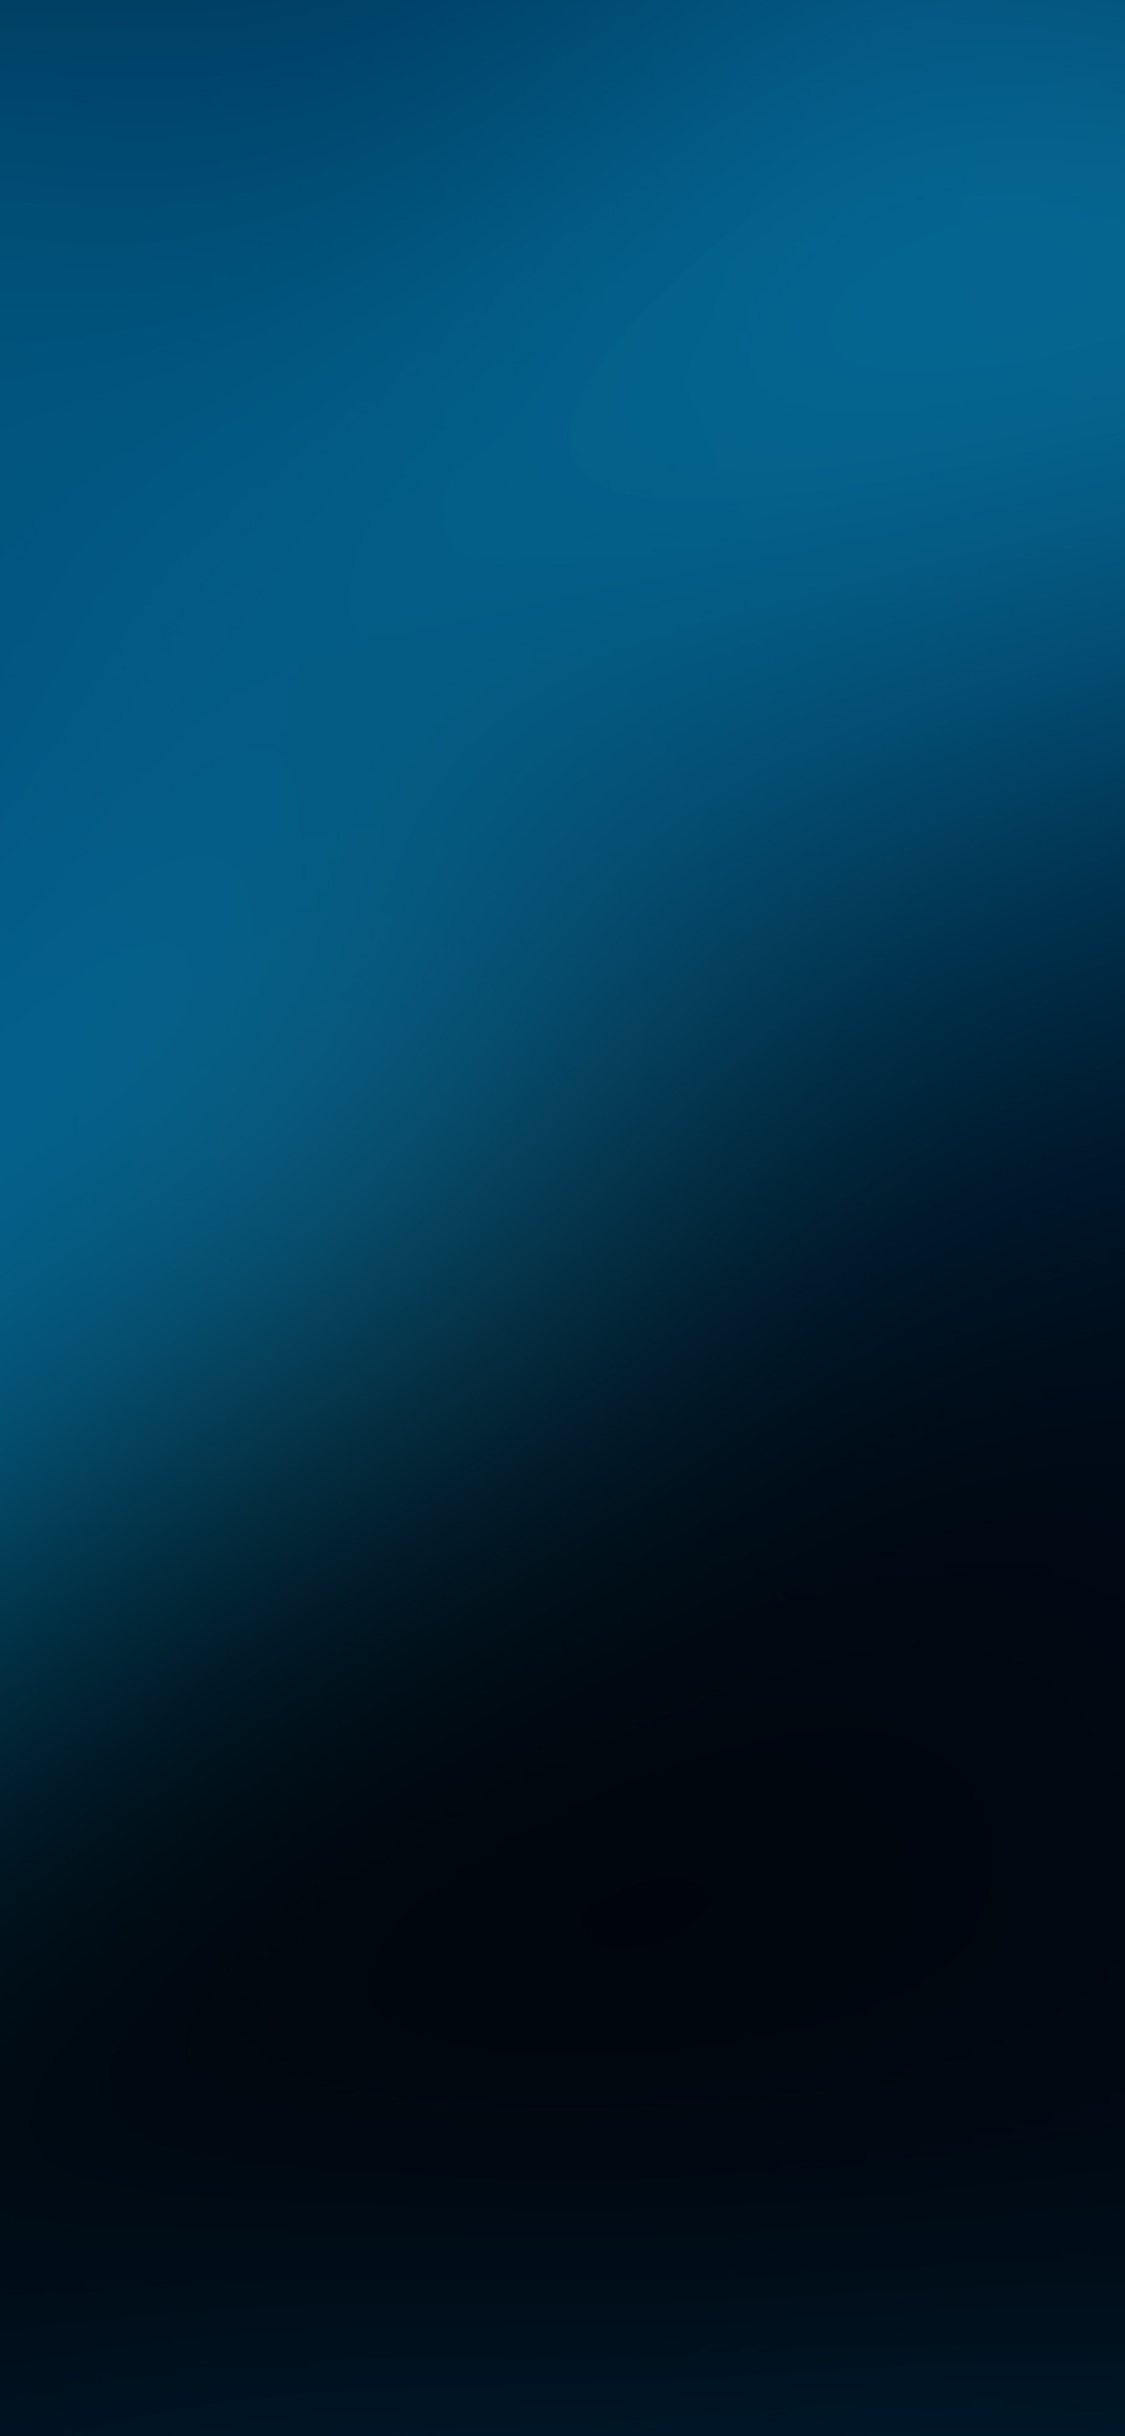 1125x2436 Blue Abstract Simple Background Iphone Xs Iphone 10 Iphone